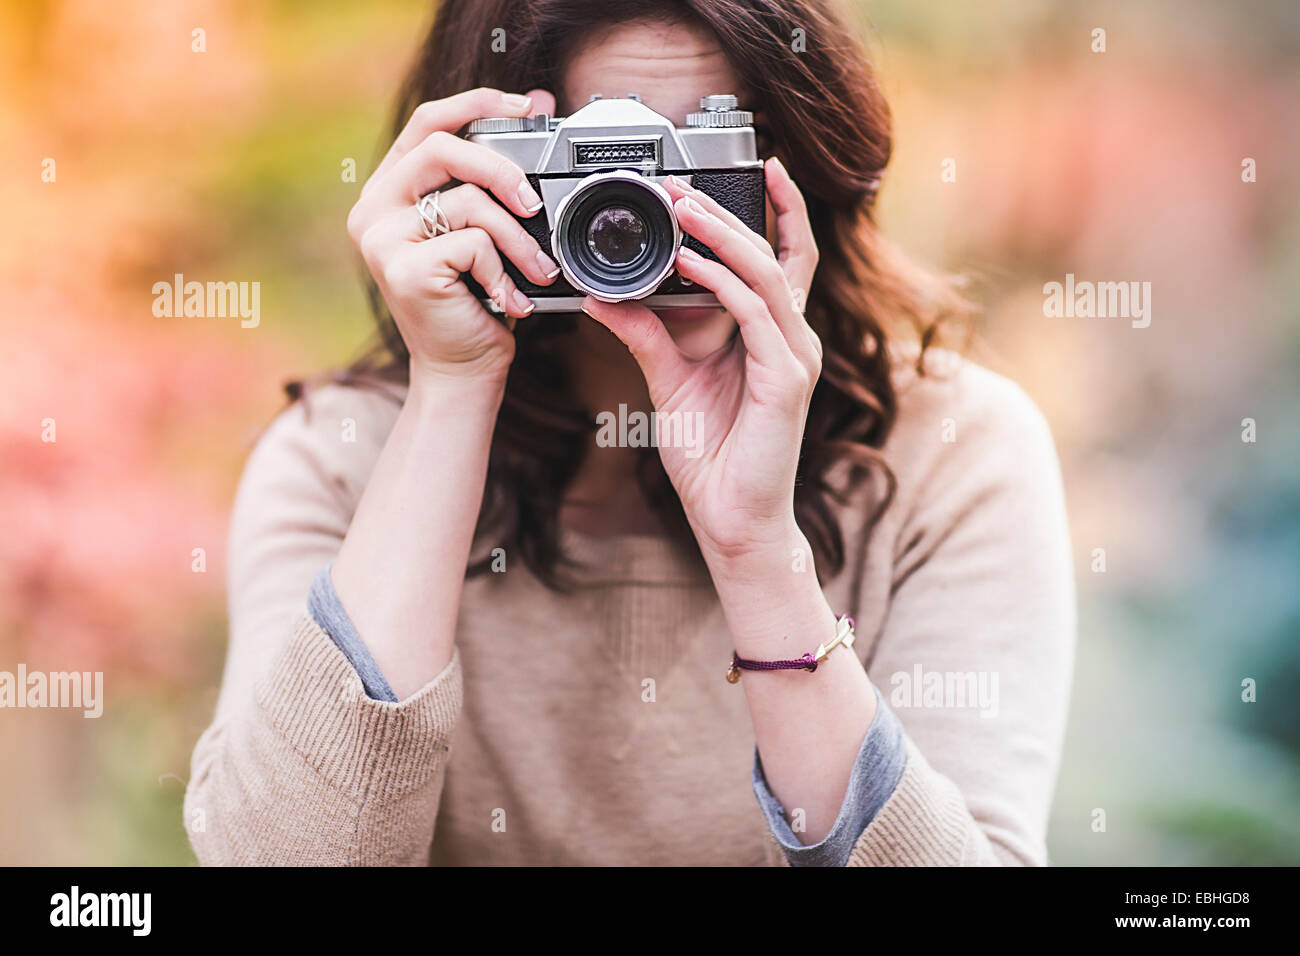 Young woman photographing with SLR camera in autumn forest - Stock Image